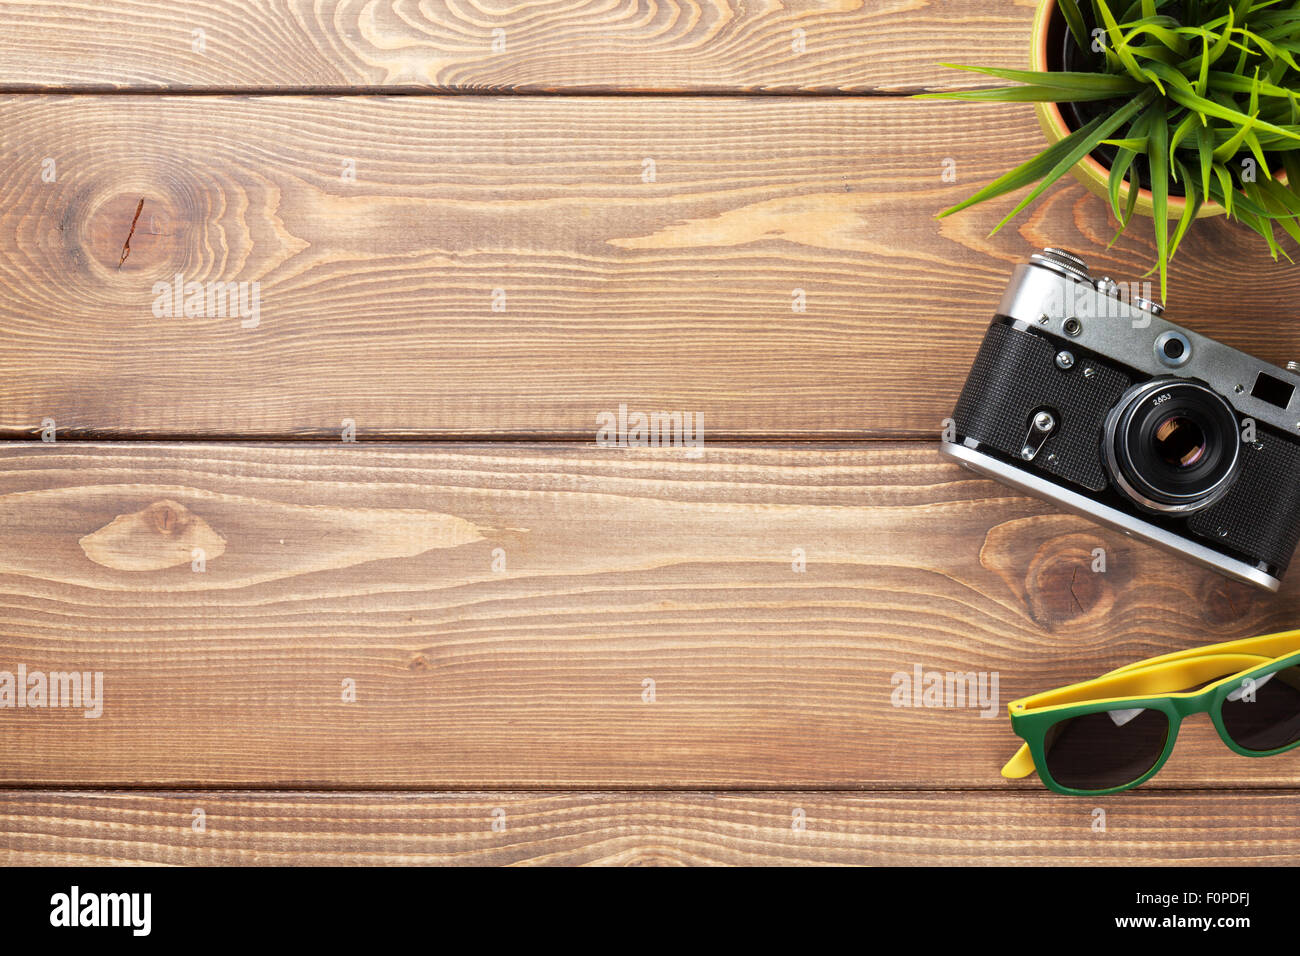 Camera, Sunglasses And Flower On Office Wooden Desk Table